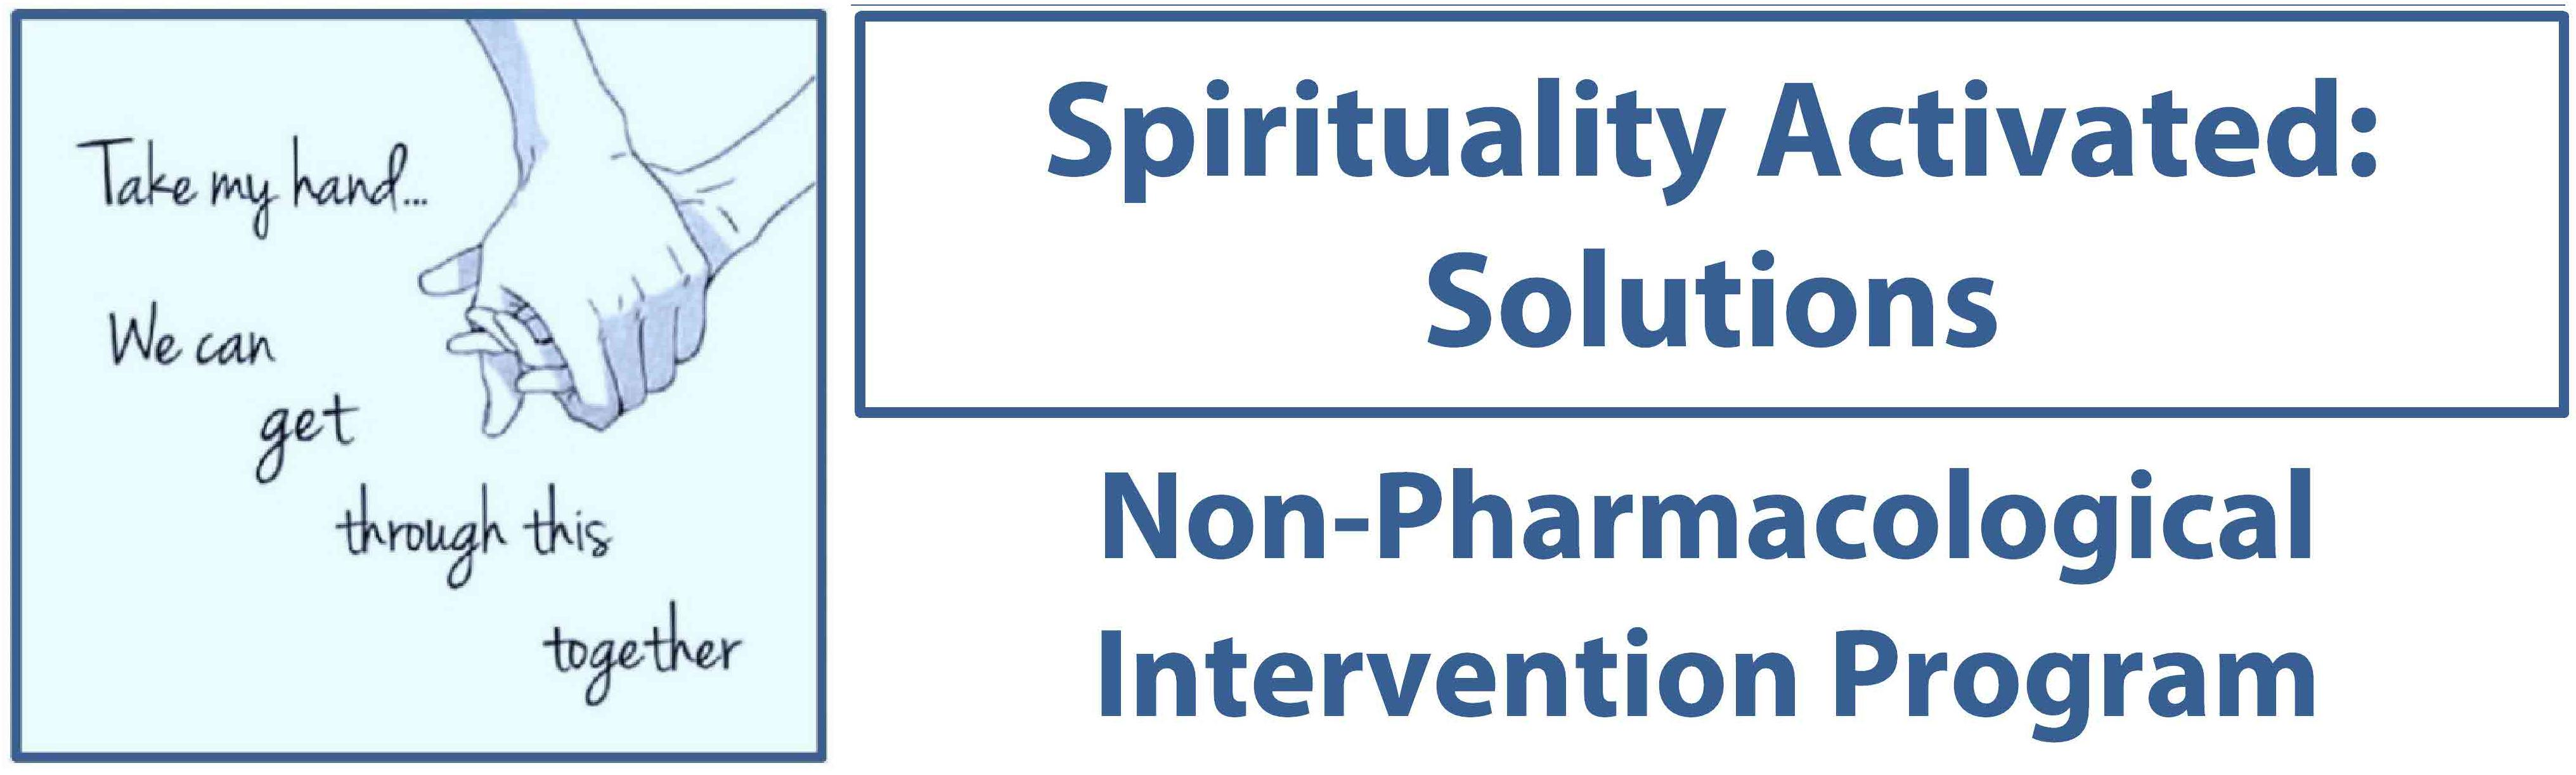 CHAPLAIN SOLUTIONS BOX - non pharmacological intervention